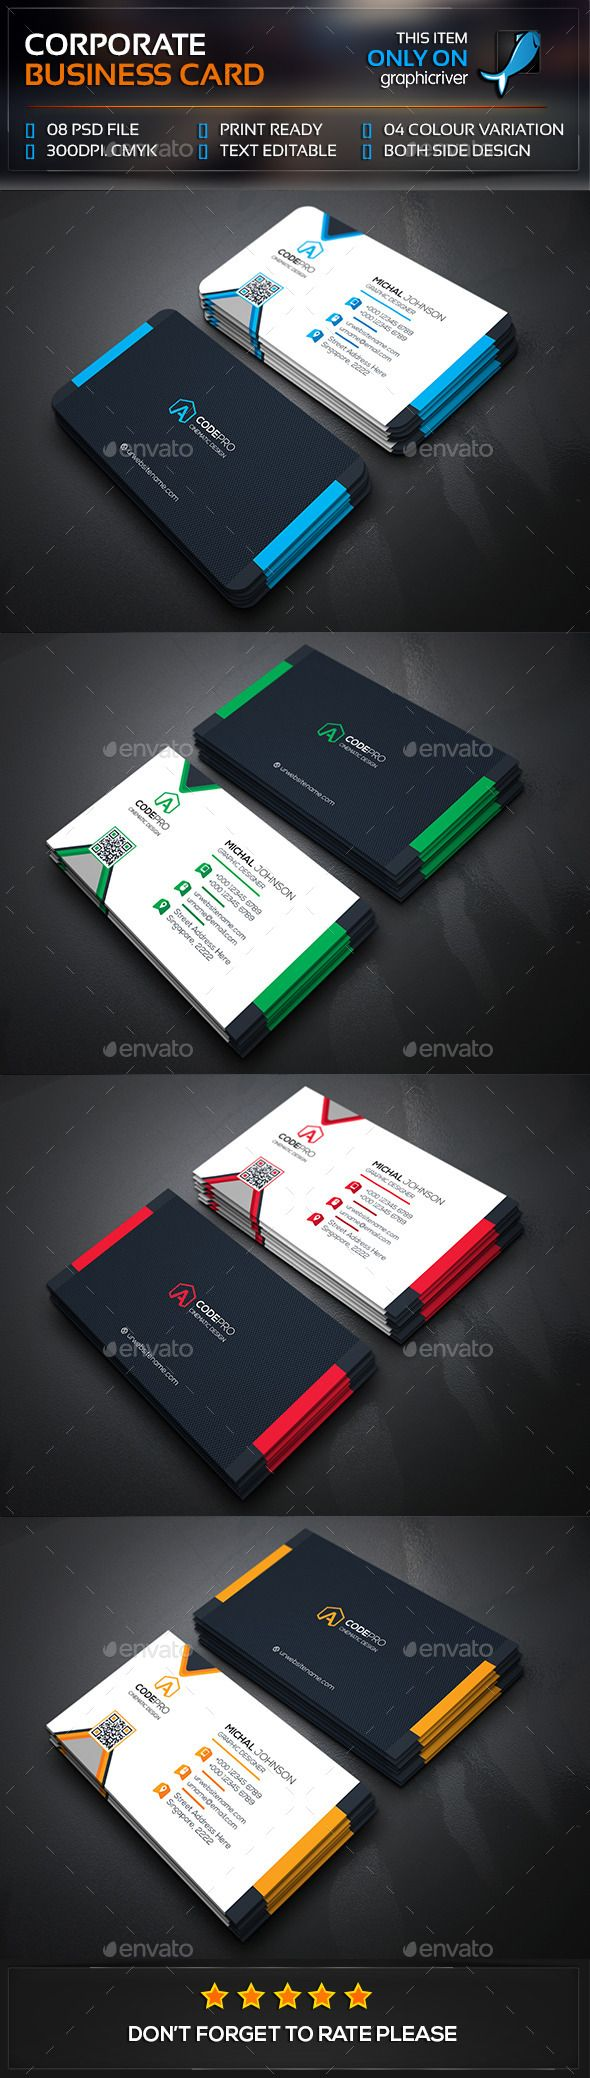 542 best Business Card images on Pinterest | Business card design ...